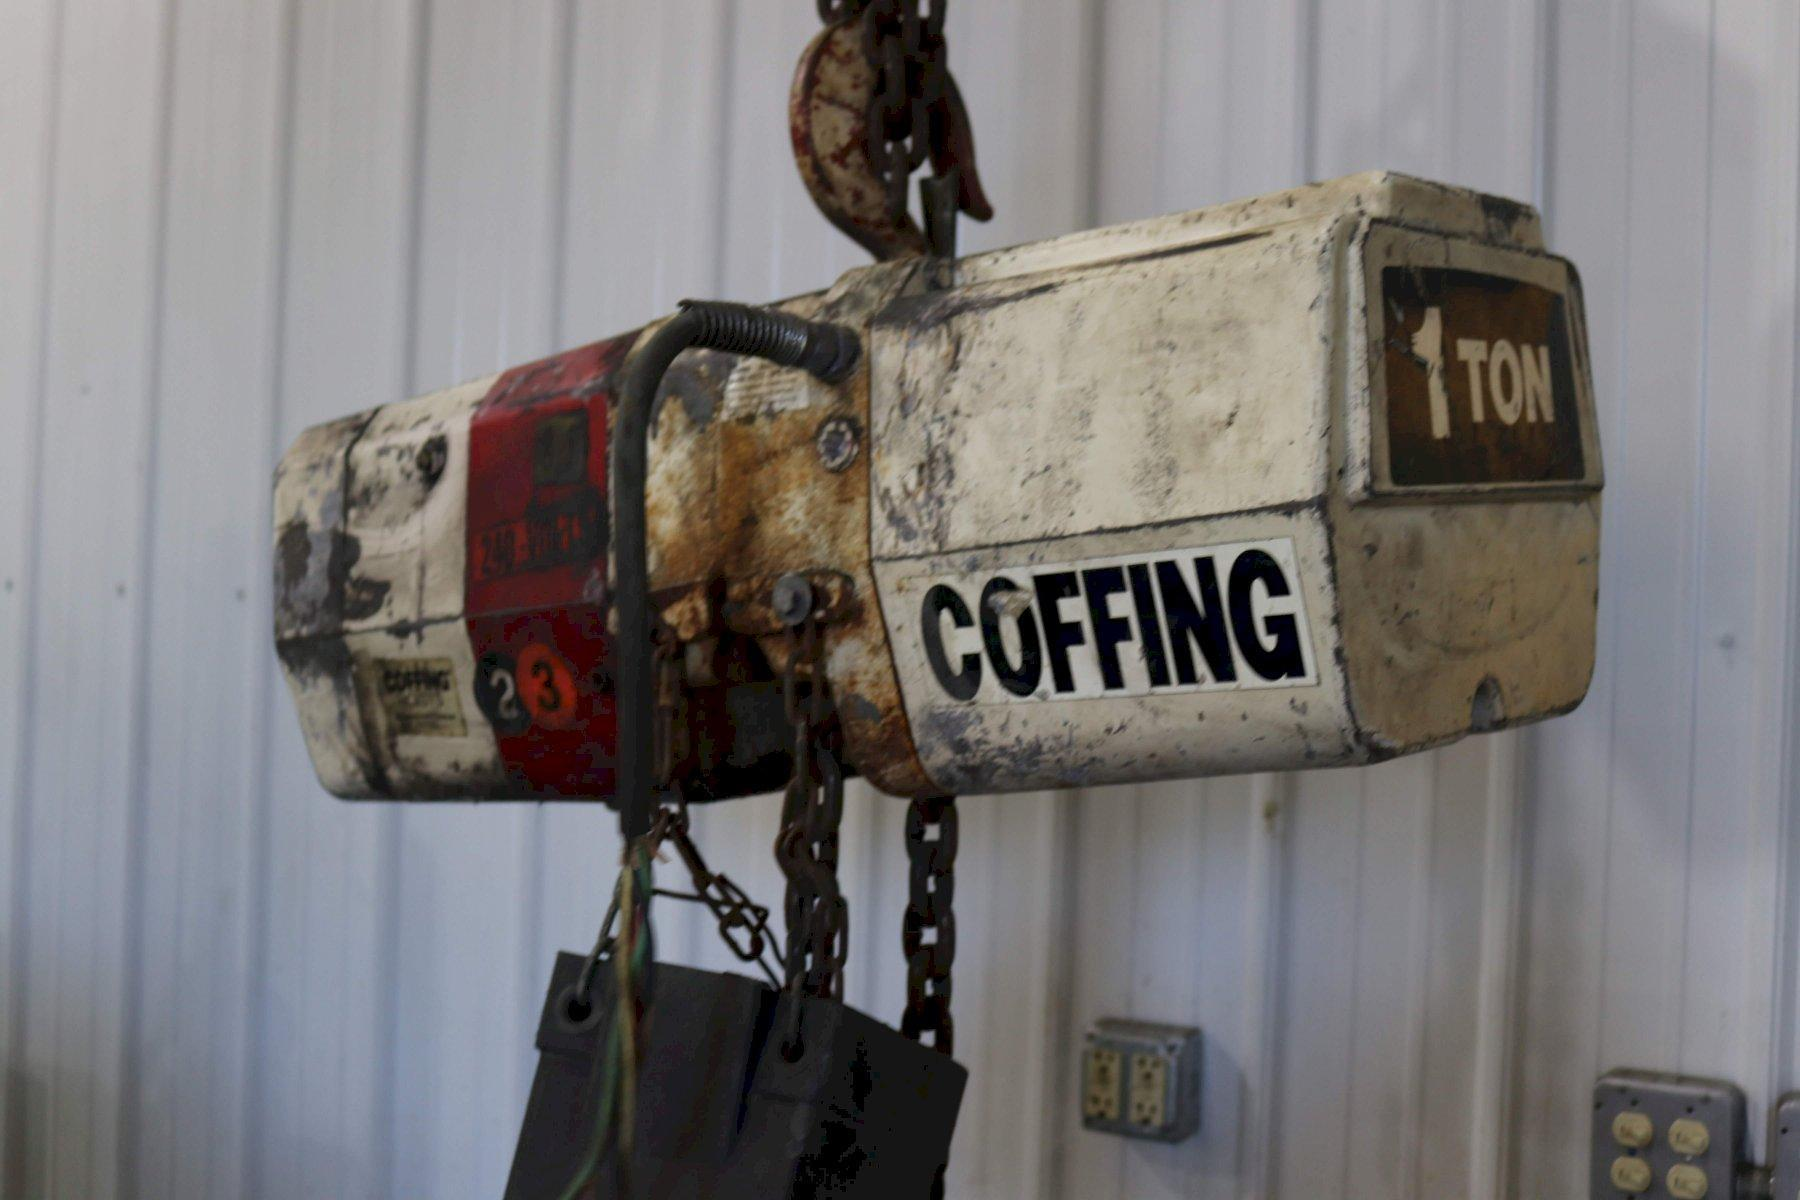 1 TON COFFING HIGH SPEED ELECTRIC CHAIN HOIST: STOCK #73084